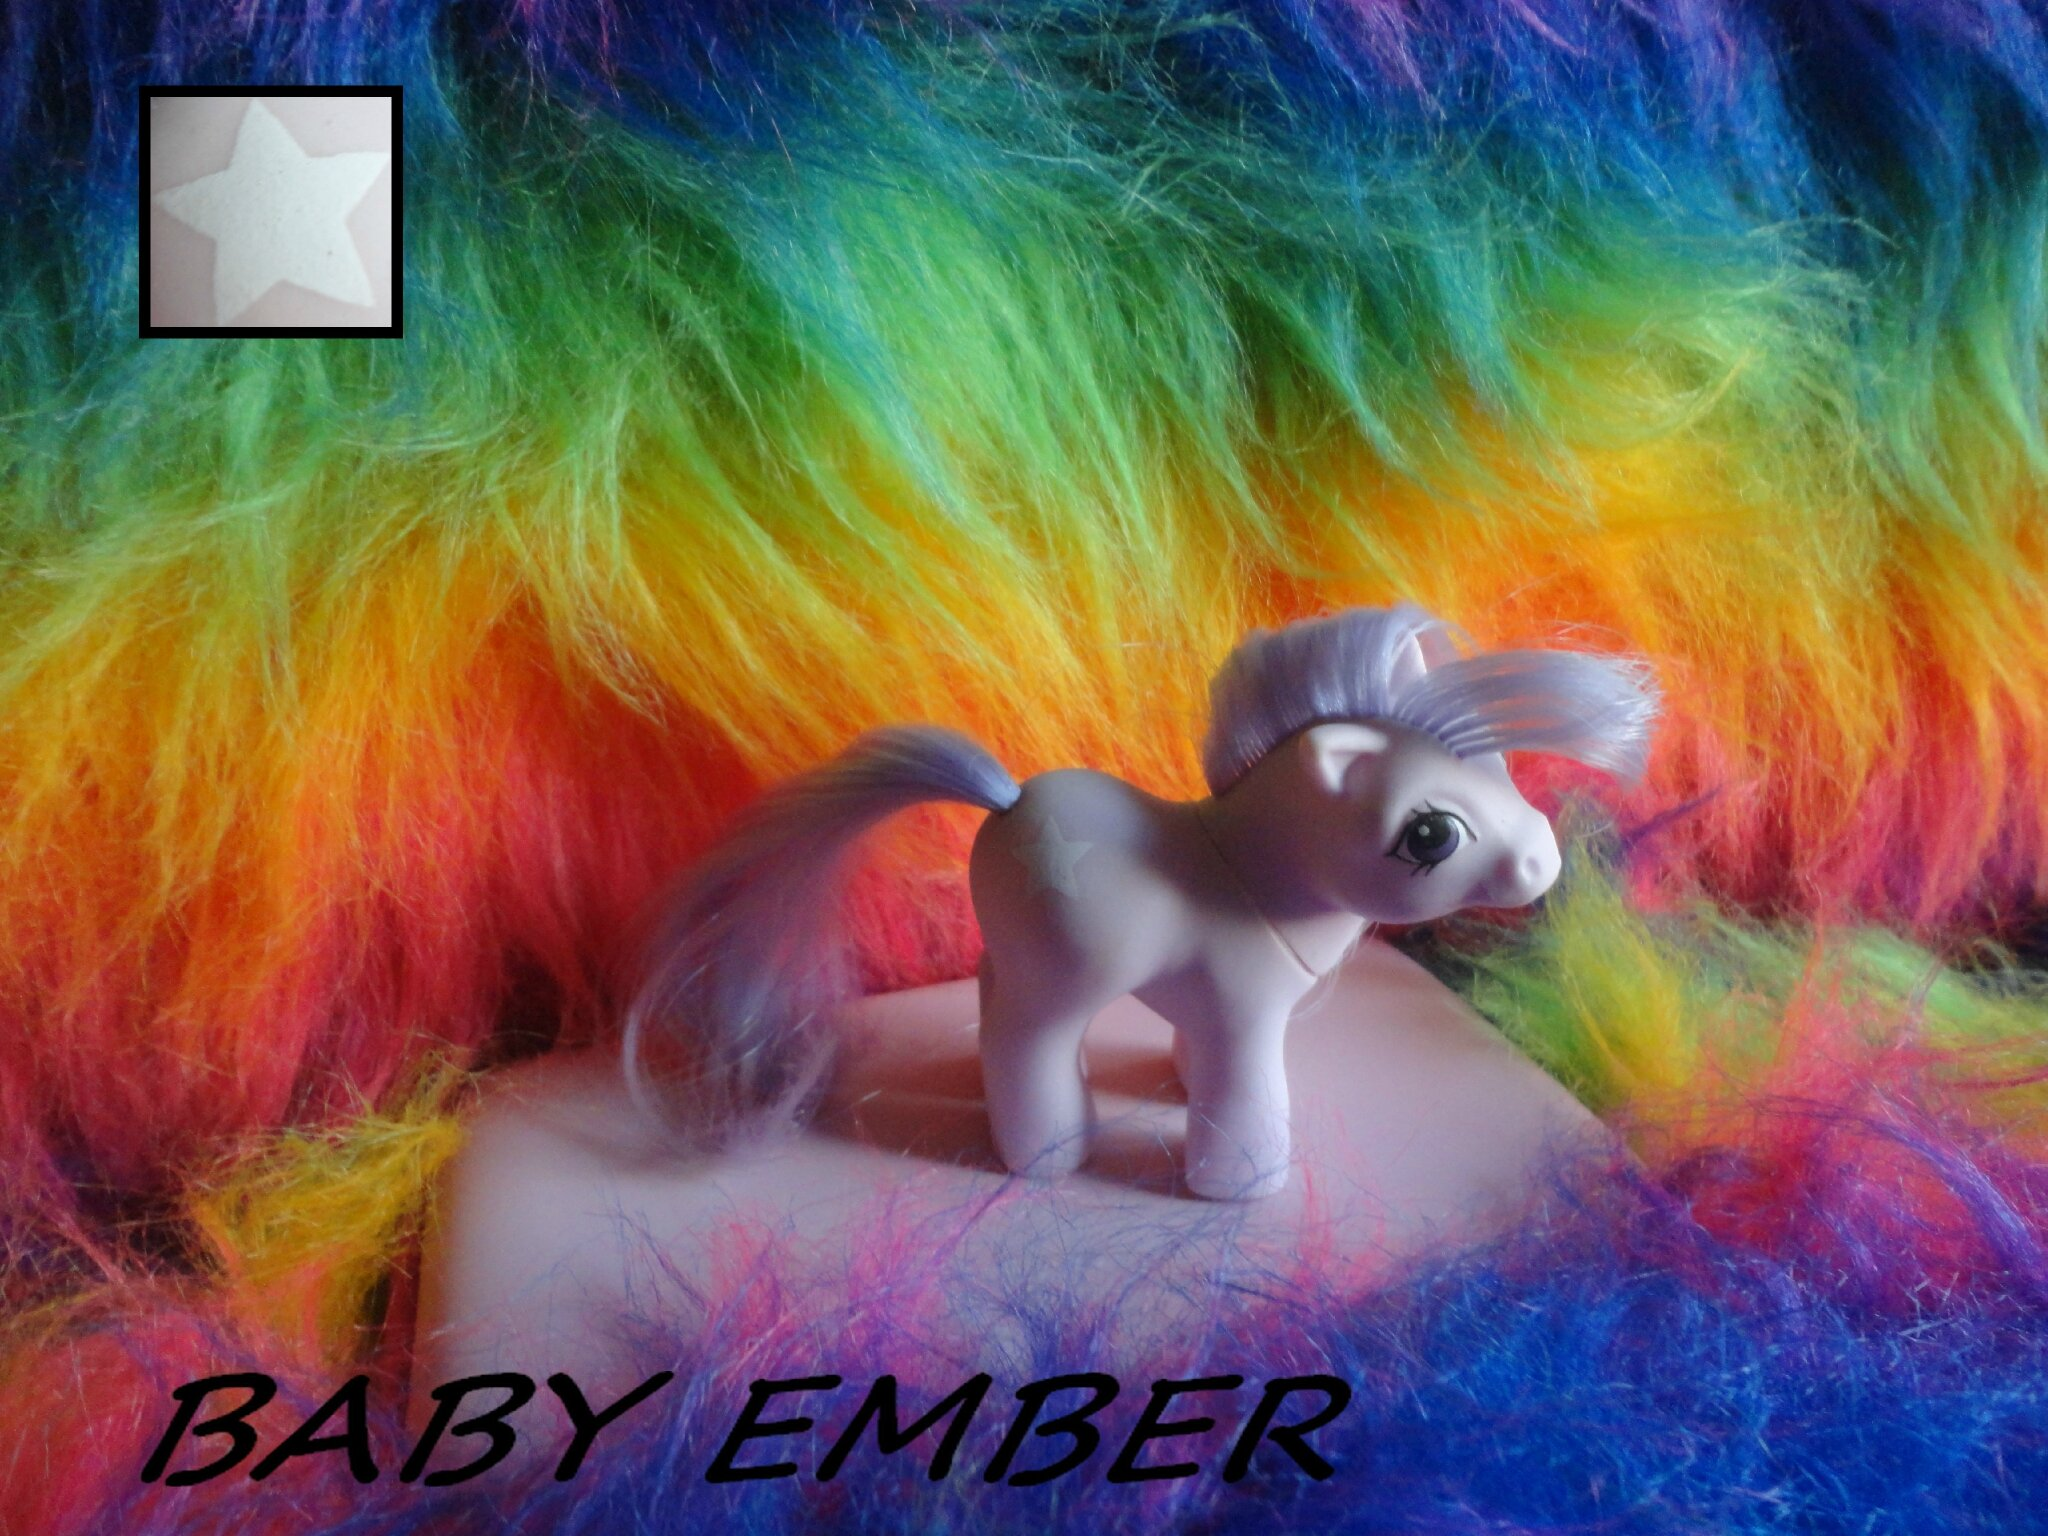 BABY EMBER